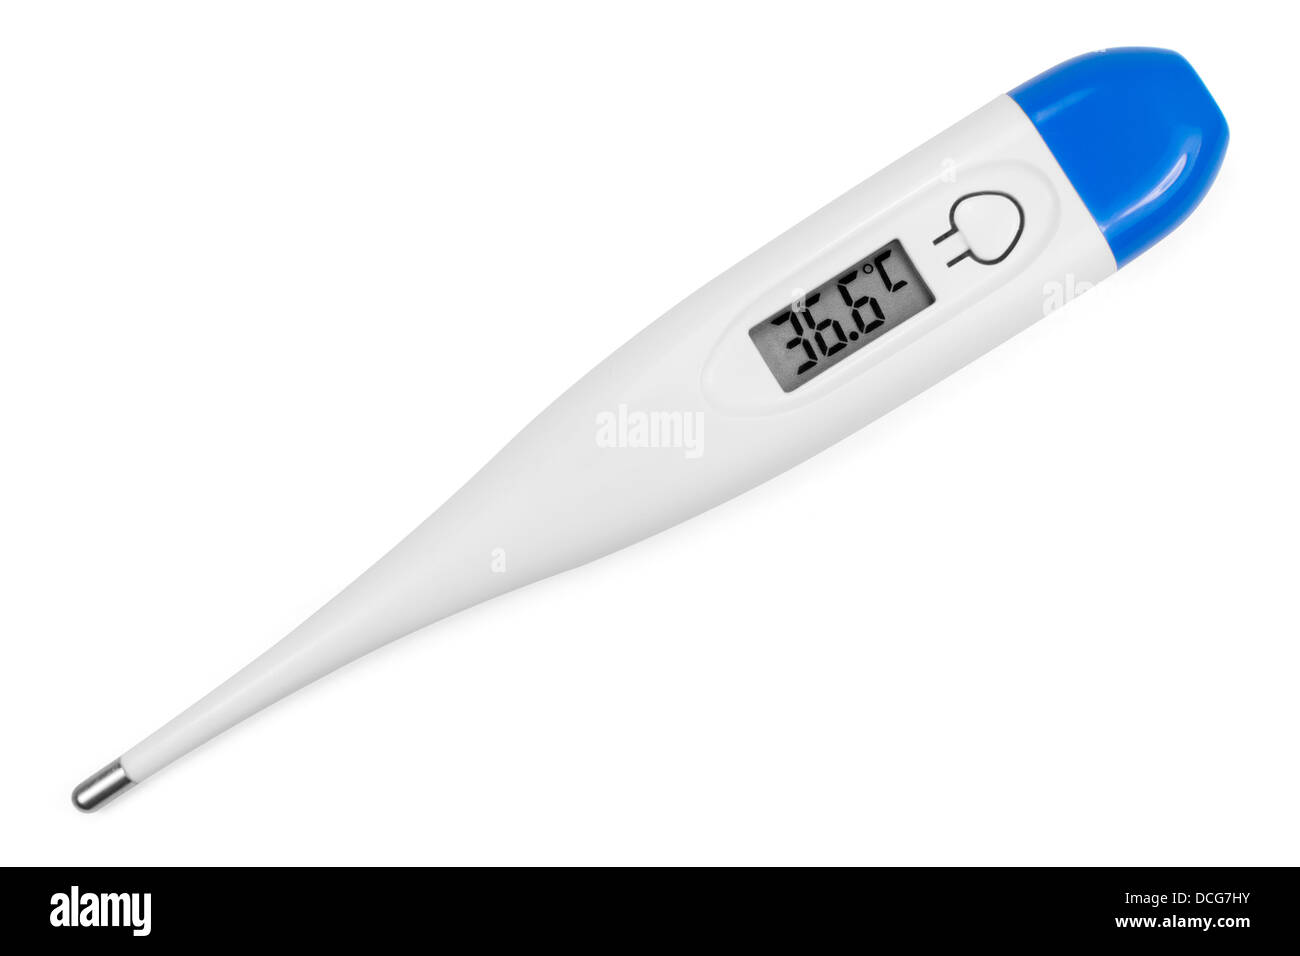 Electronic body thermometer displaying healthy human body temperature 36.6 grades C (Celsius). Isolated on white. - Stock Image